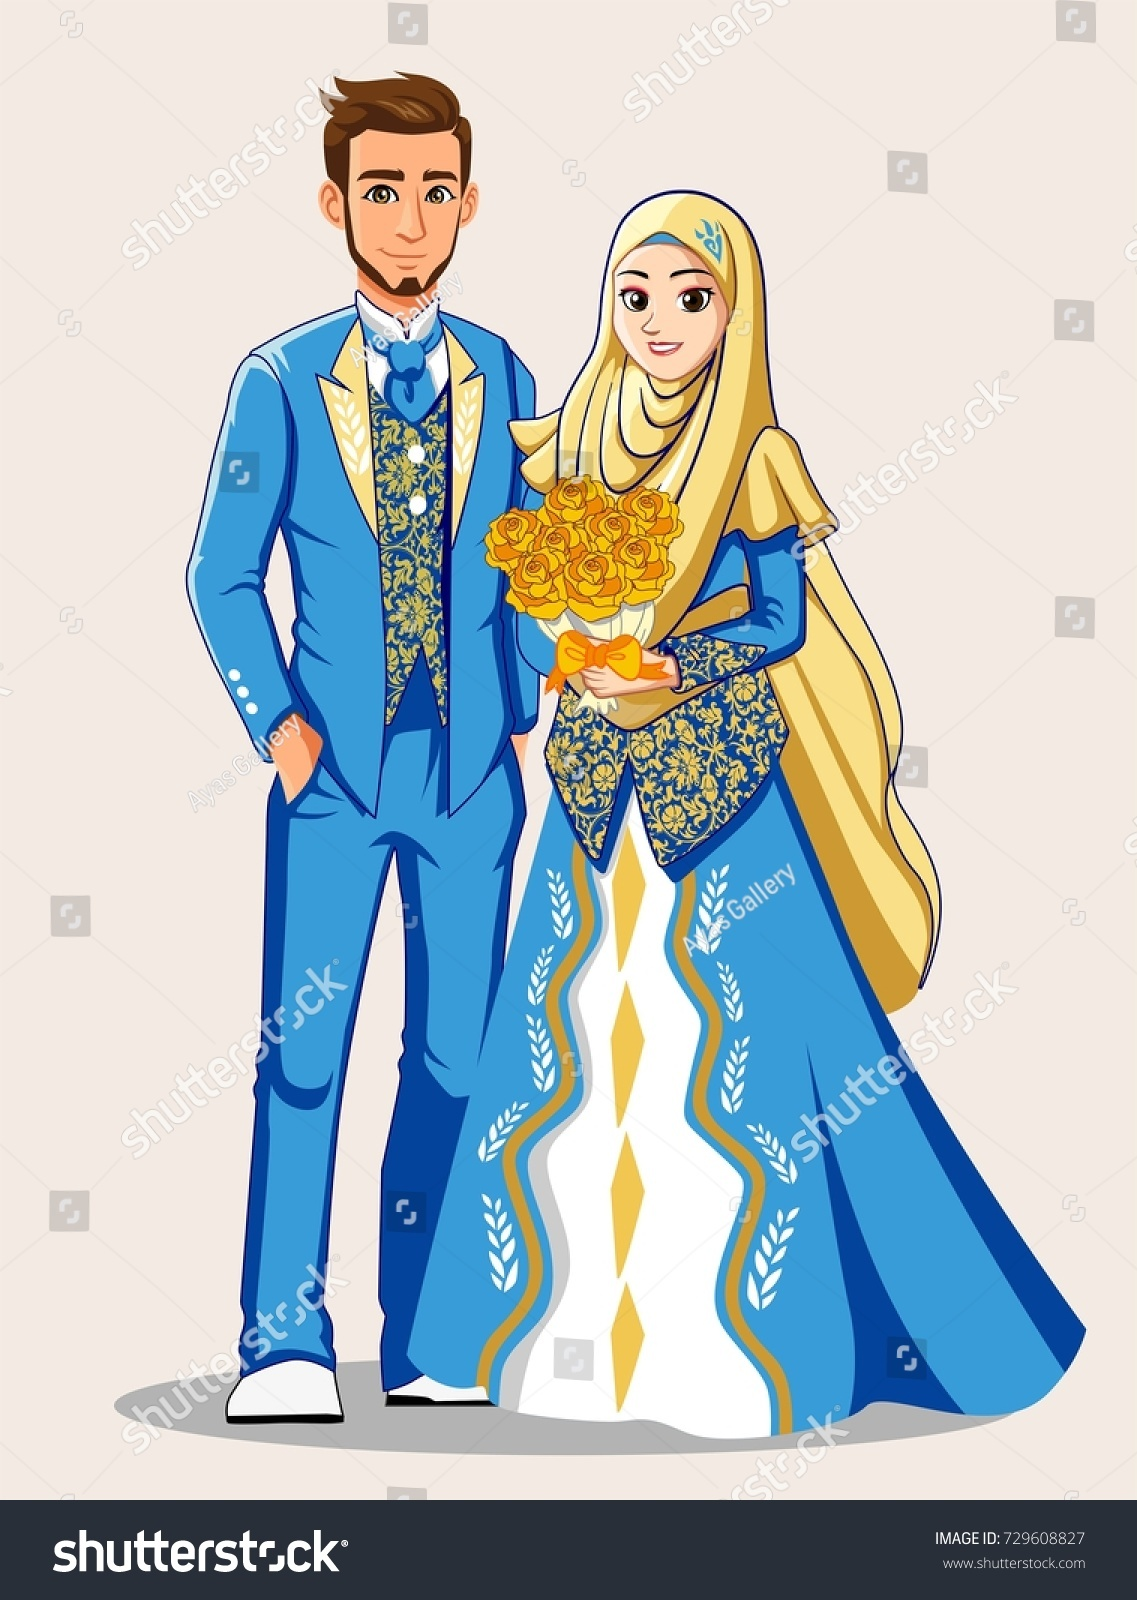 Muslim Wedding Couple Blue Gold Color Stock Vector 729608827 ...